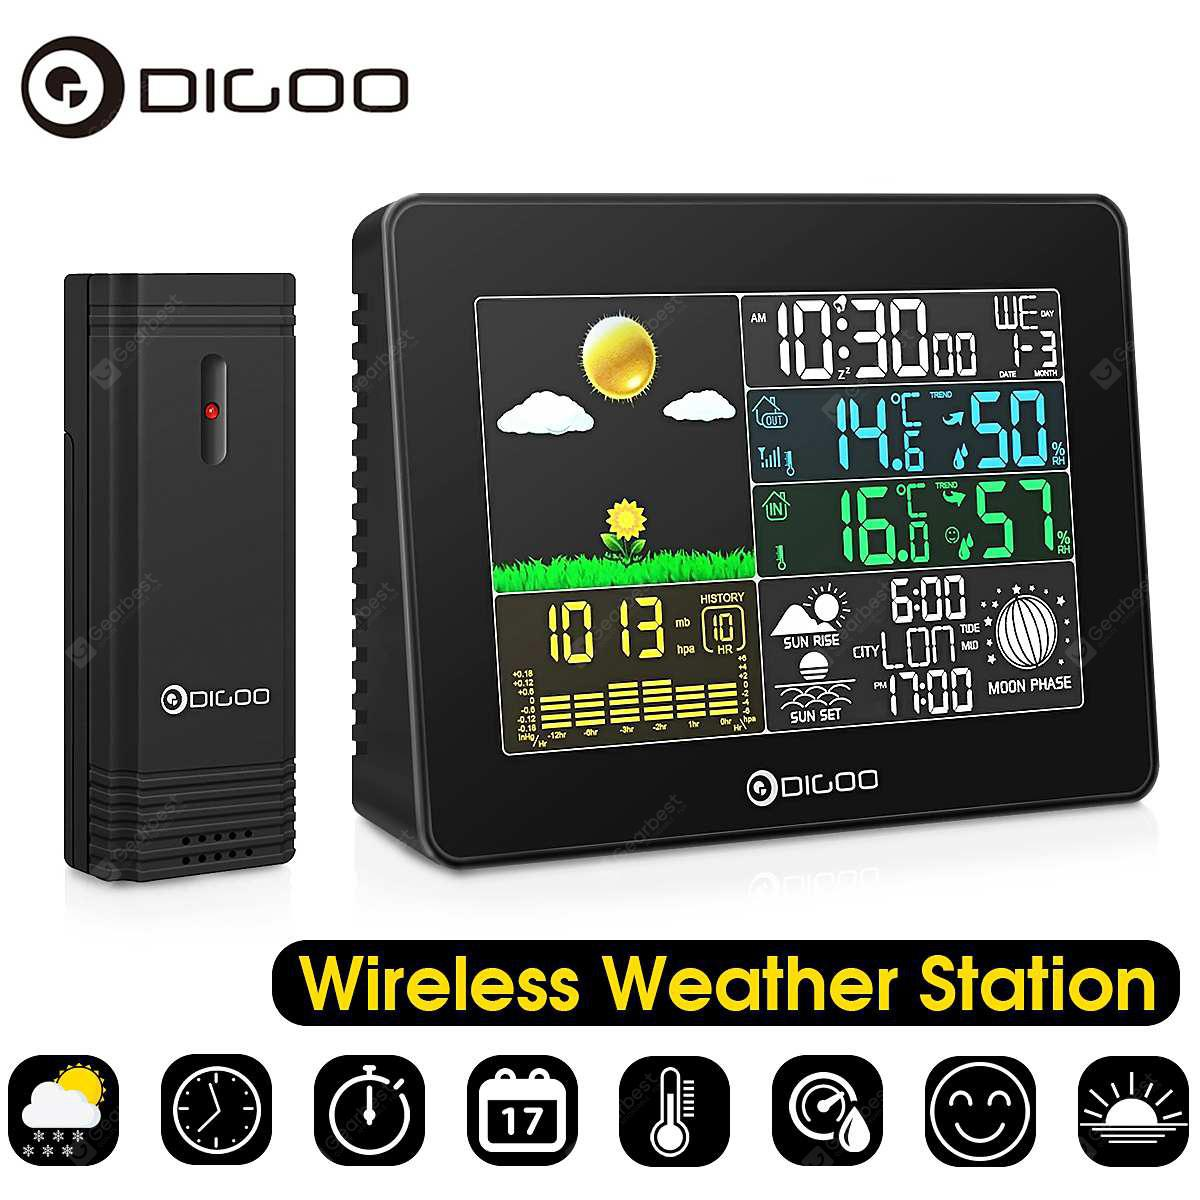 Digoo DG TH8868 Wireless Full Color Digital Barometric Weather Station  Outdoor Forecast Sensor Hygrometer Thermometer Clock